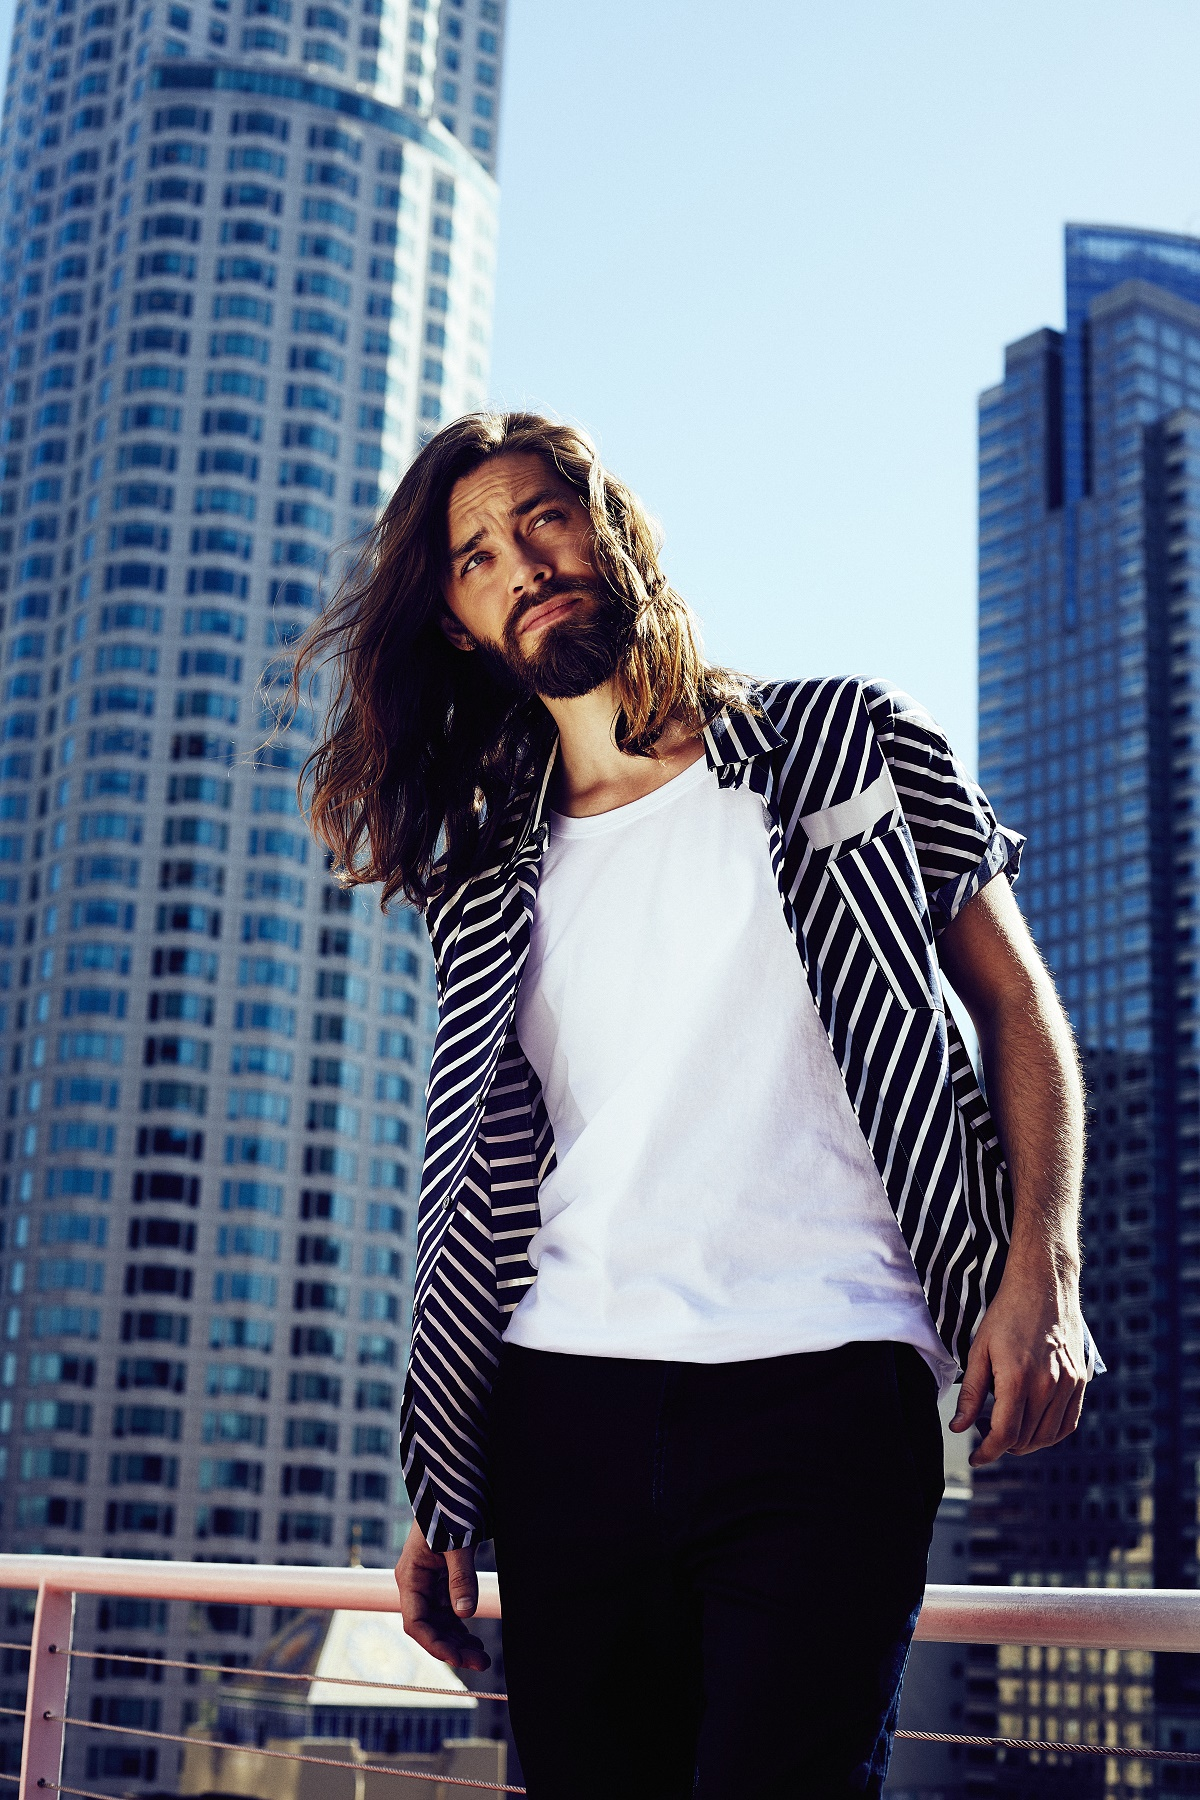 The Walking Dead's Tom Payne season 9 gay role - Attitude.co.uk The Walking Dead's Tom Payne talks Jesus, season nine and straight actors playing gay roles - 웹